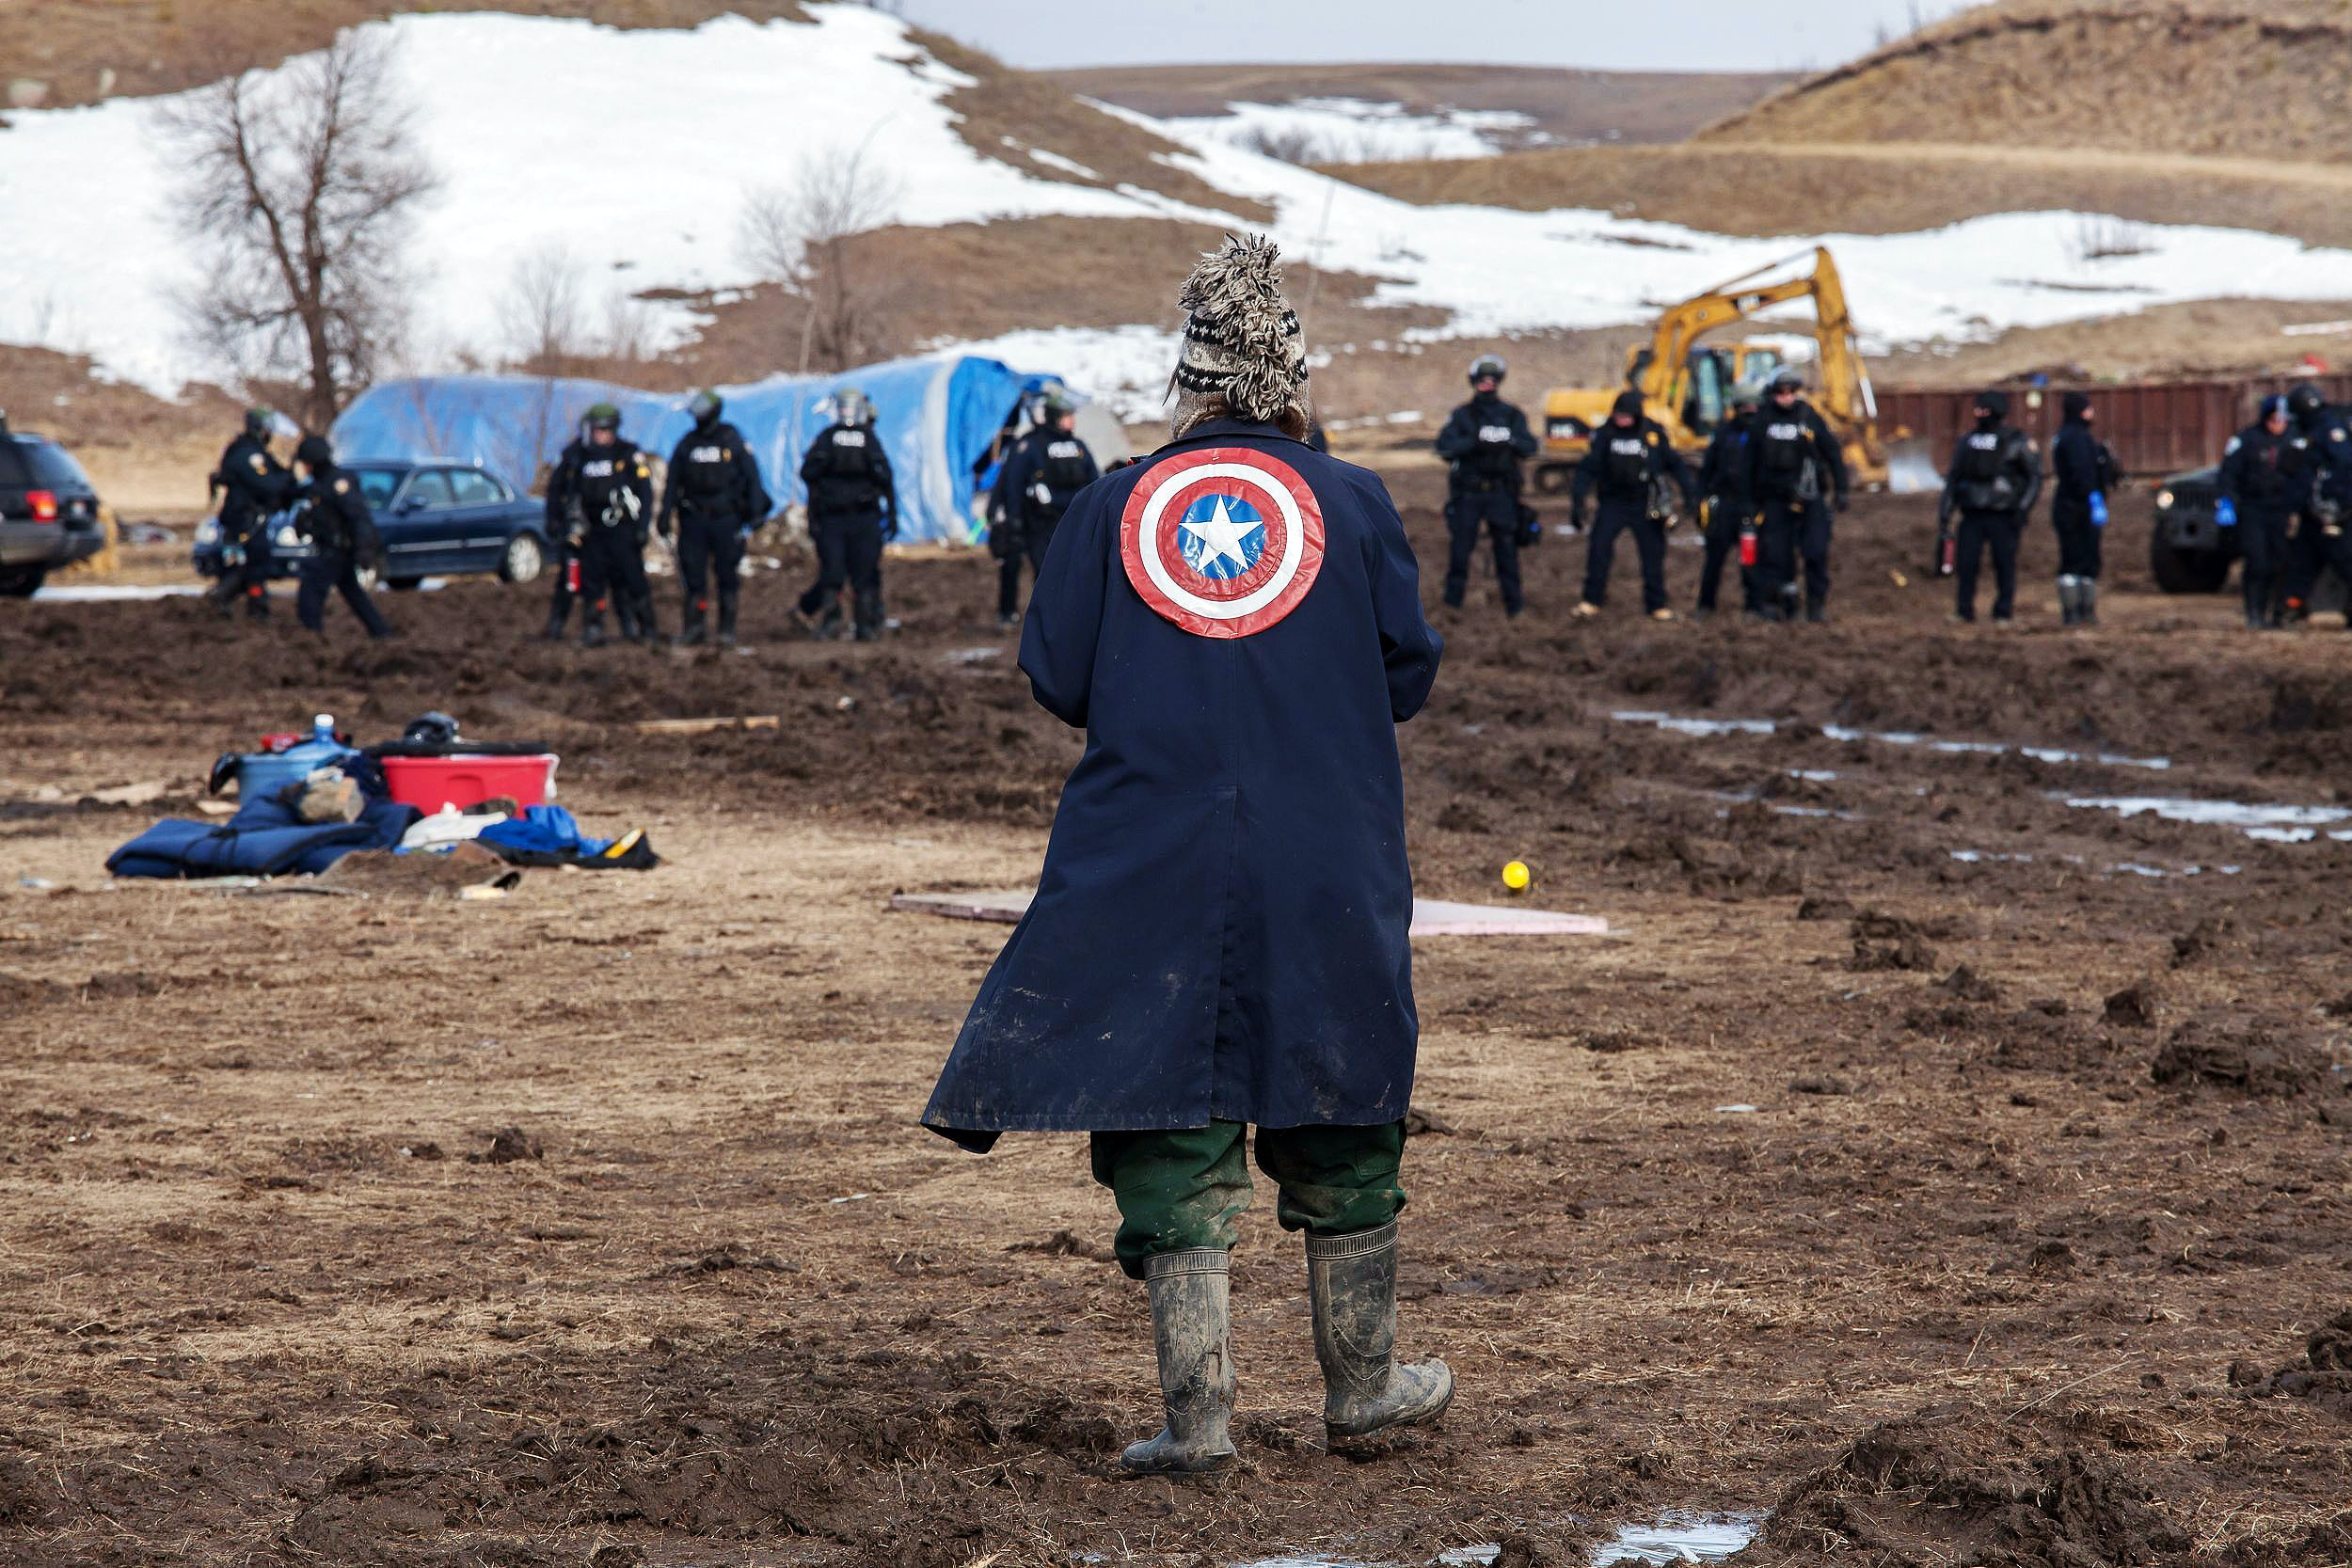 A Protester make their last stand as authorites approach Oceti Sakowin Encampment in North Dakota Authorities clear Standing Rock protest camp, North Dakota, USA - 23 Feb 2017 (Rex Features via AP Images)